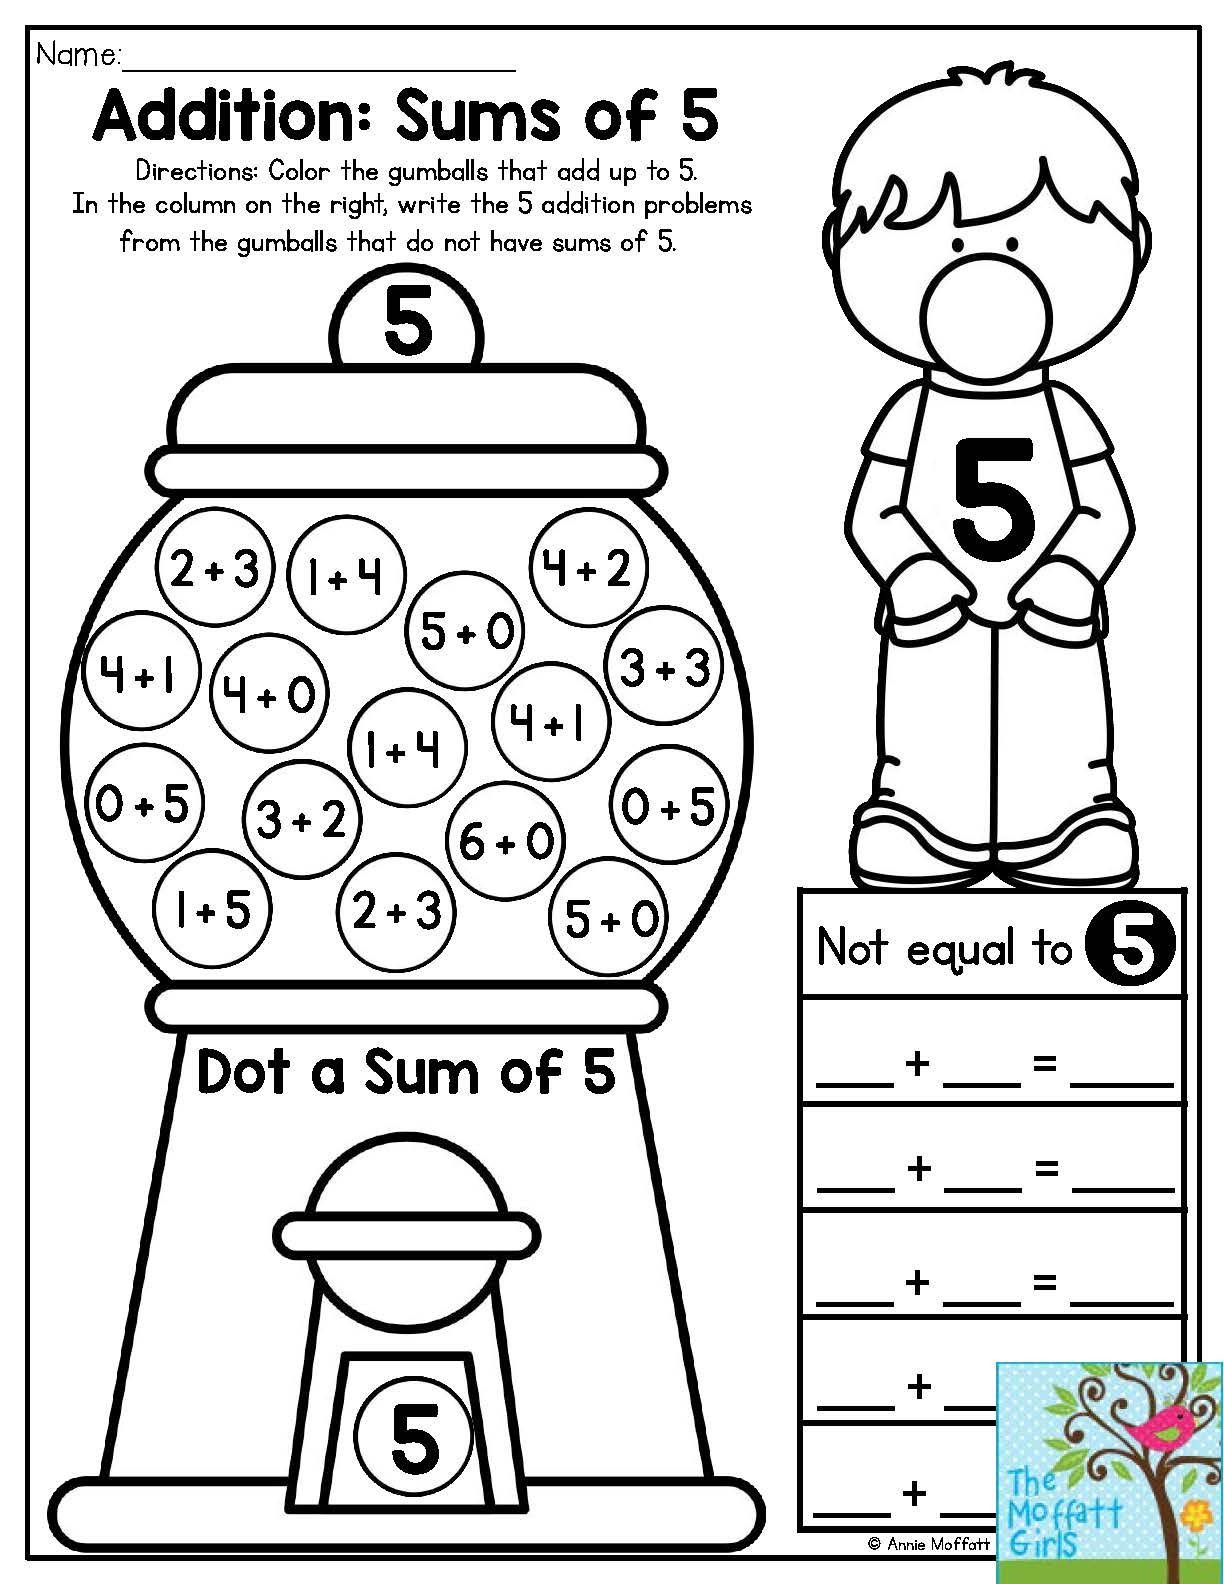 Bubble Gum Numbers Addition Sums of 5 Color the gumballs